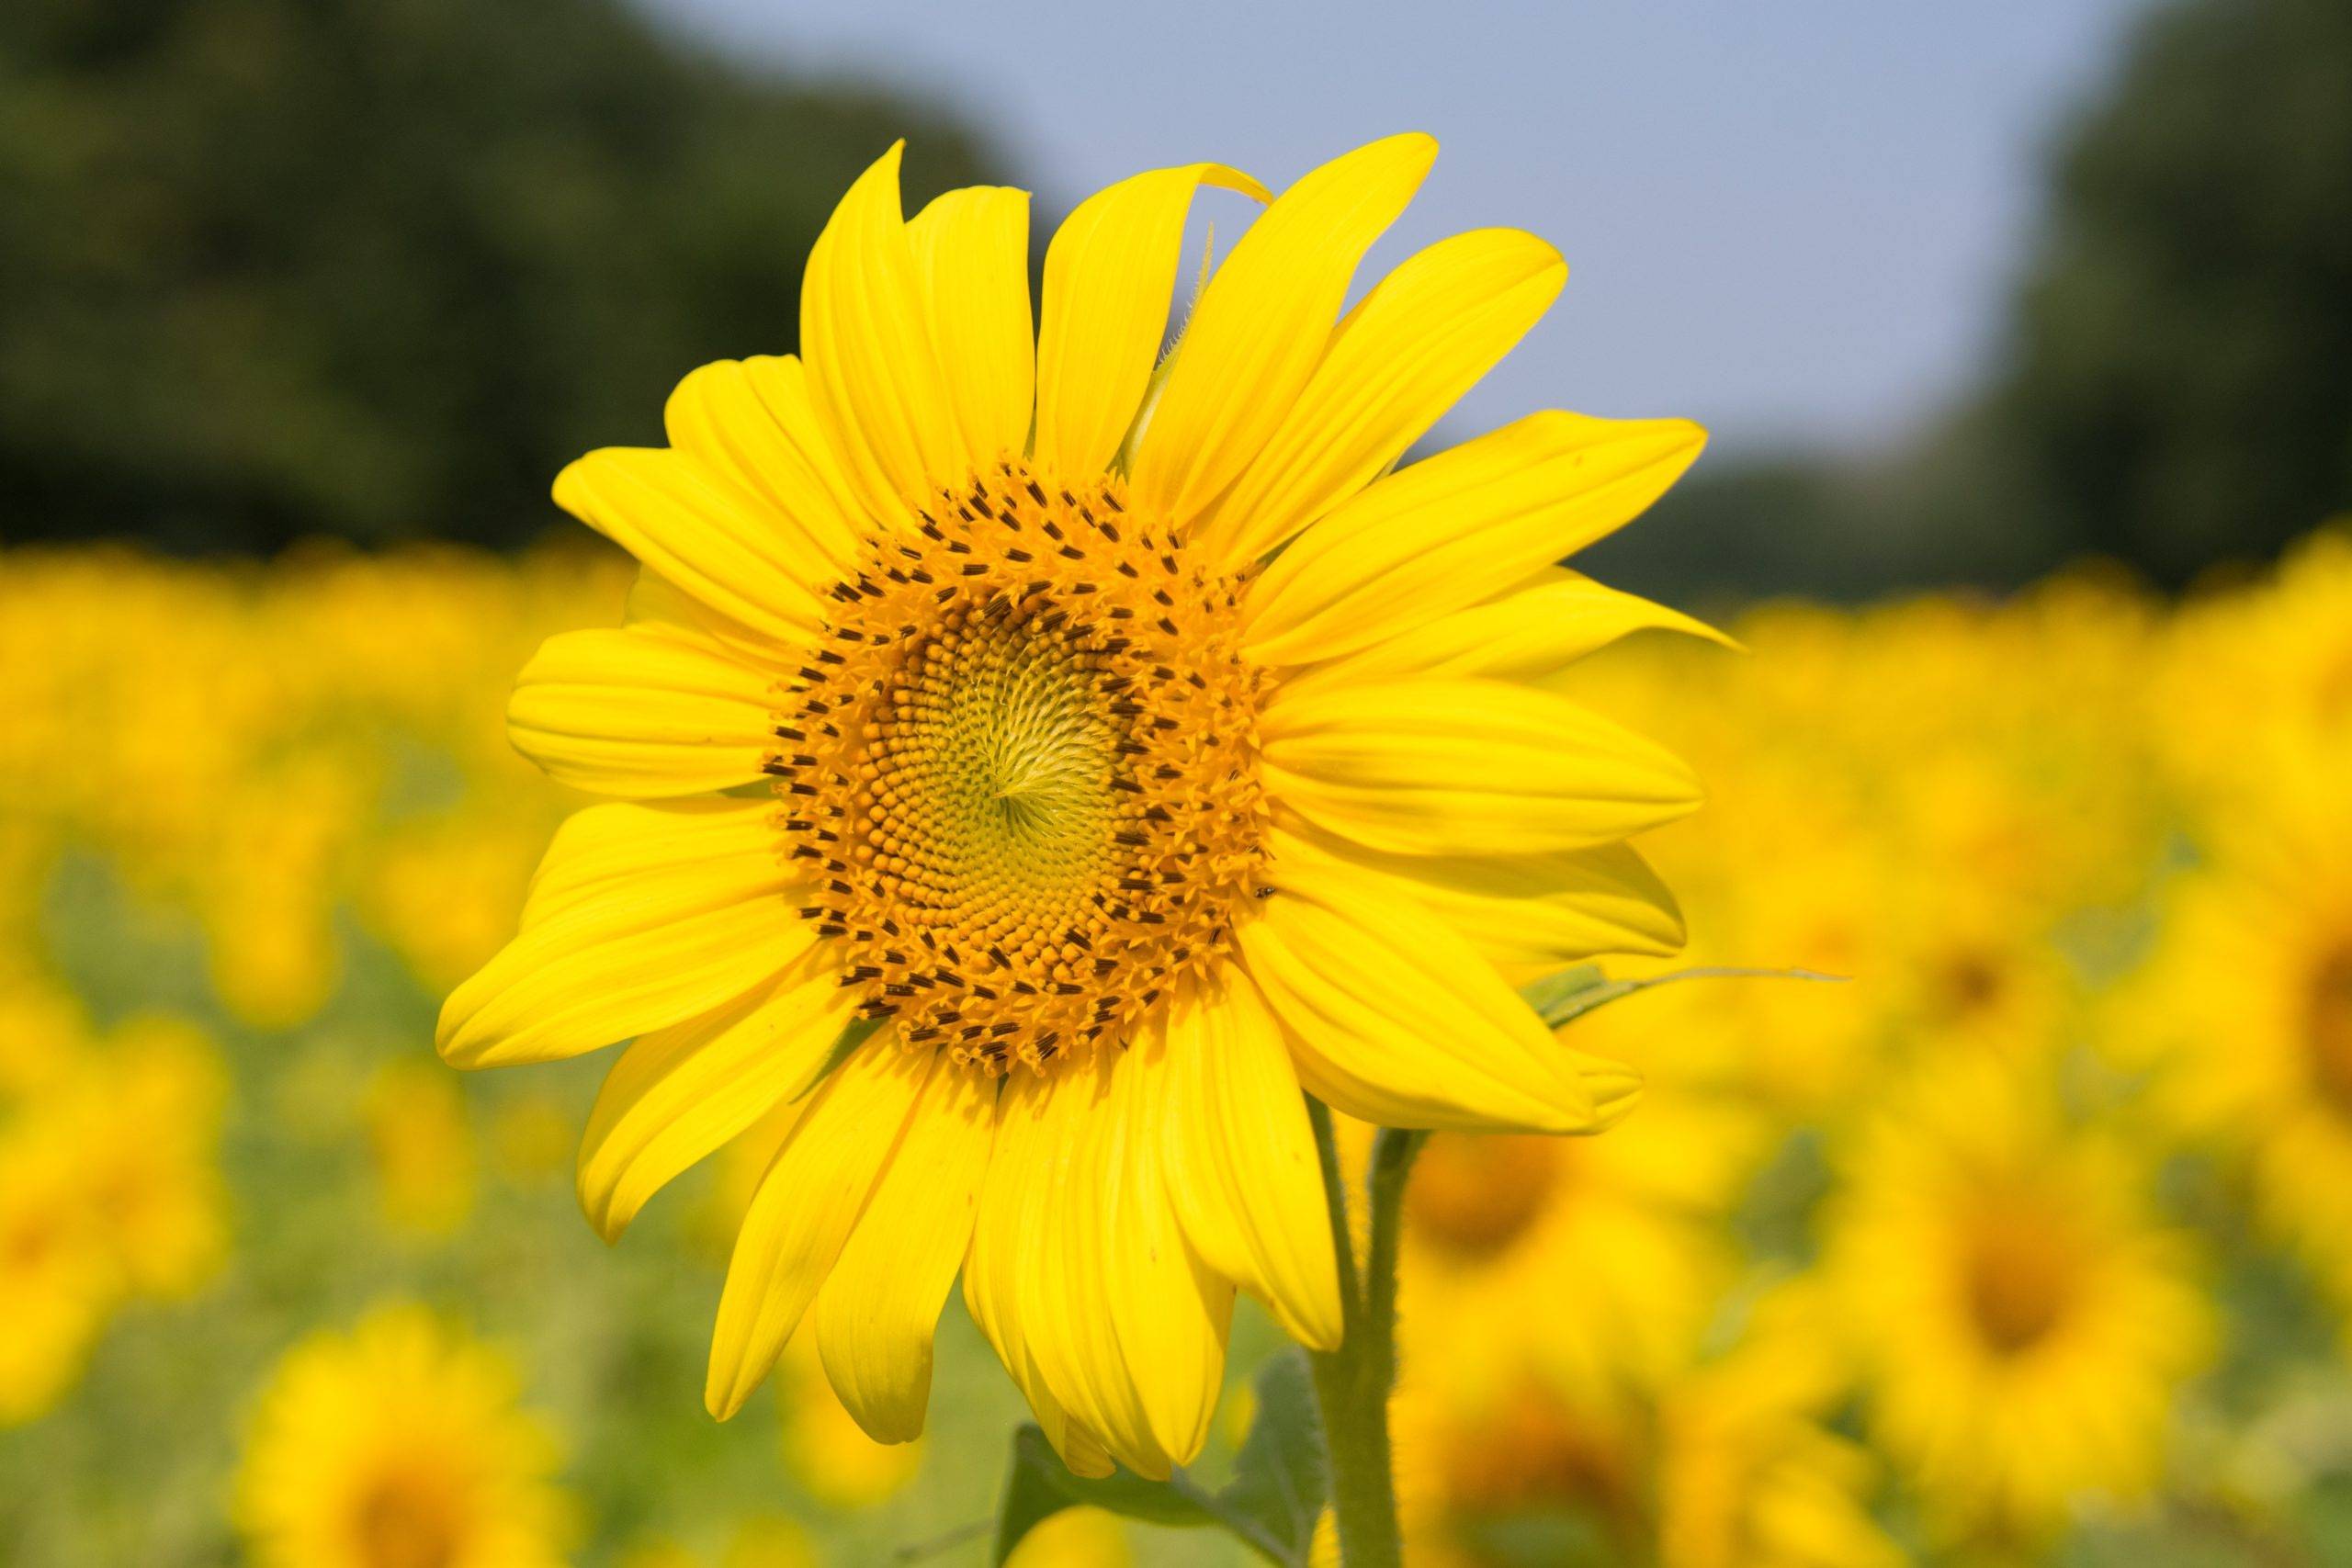 sunflower blossoming in nature